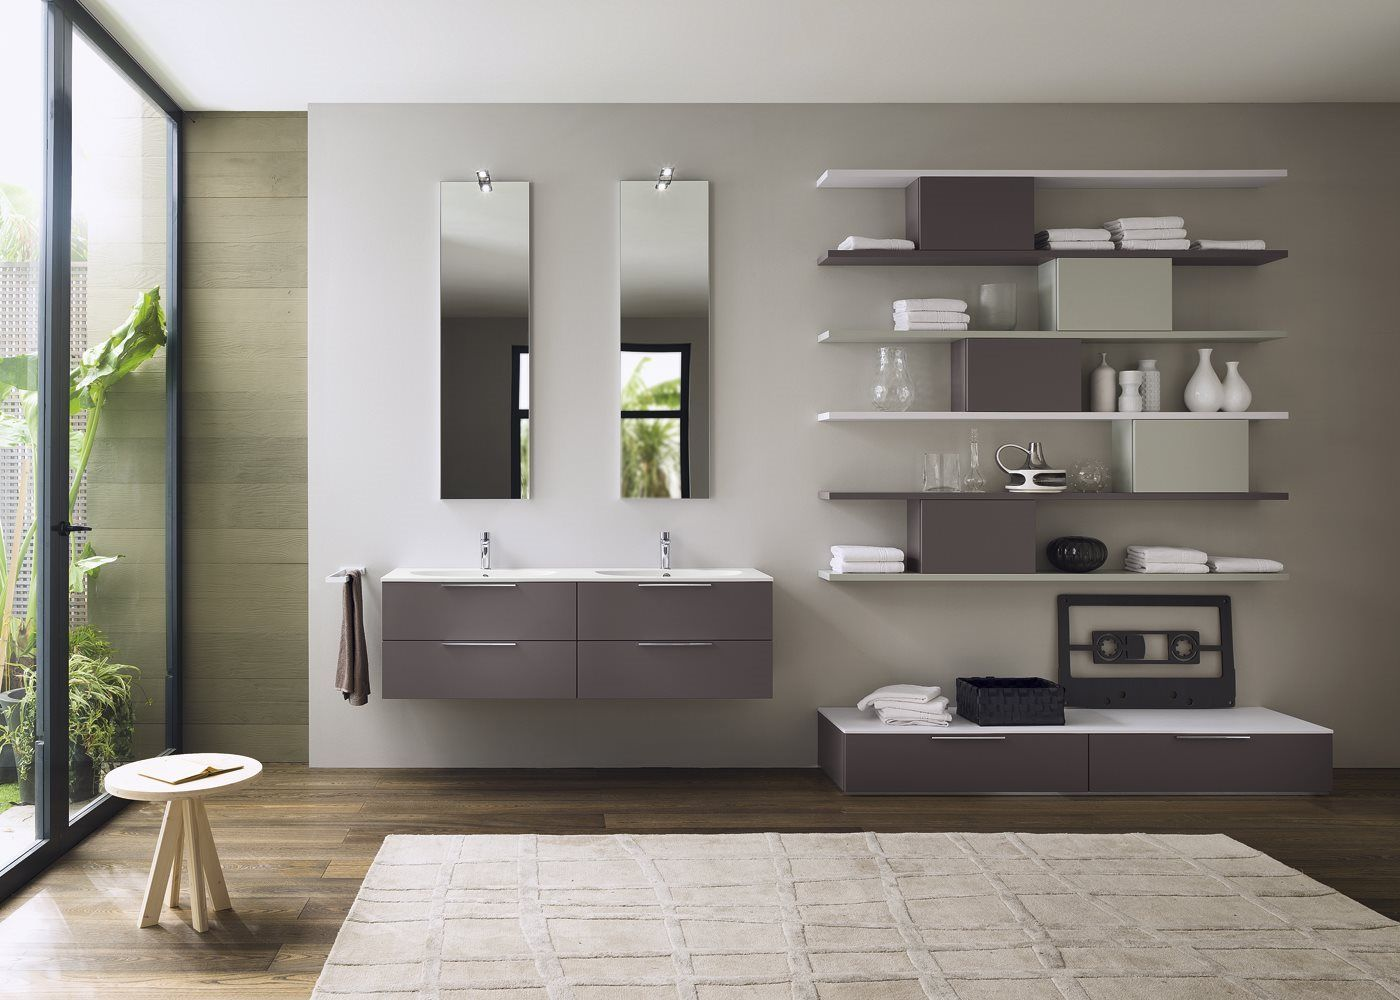 stylish modular wooden bathroom vanity. The Modular System Progetto Allows You To Create Complete Solutions For Bathroom Decorations. Stylish Wooden Vanity